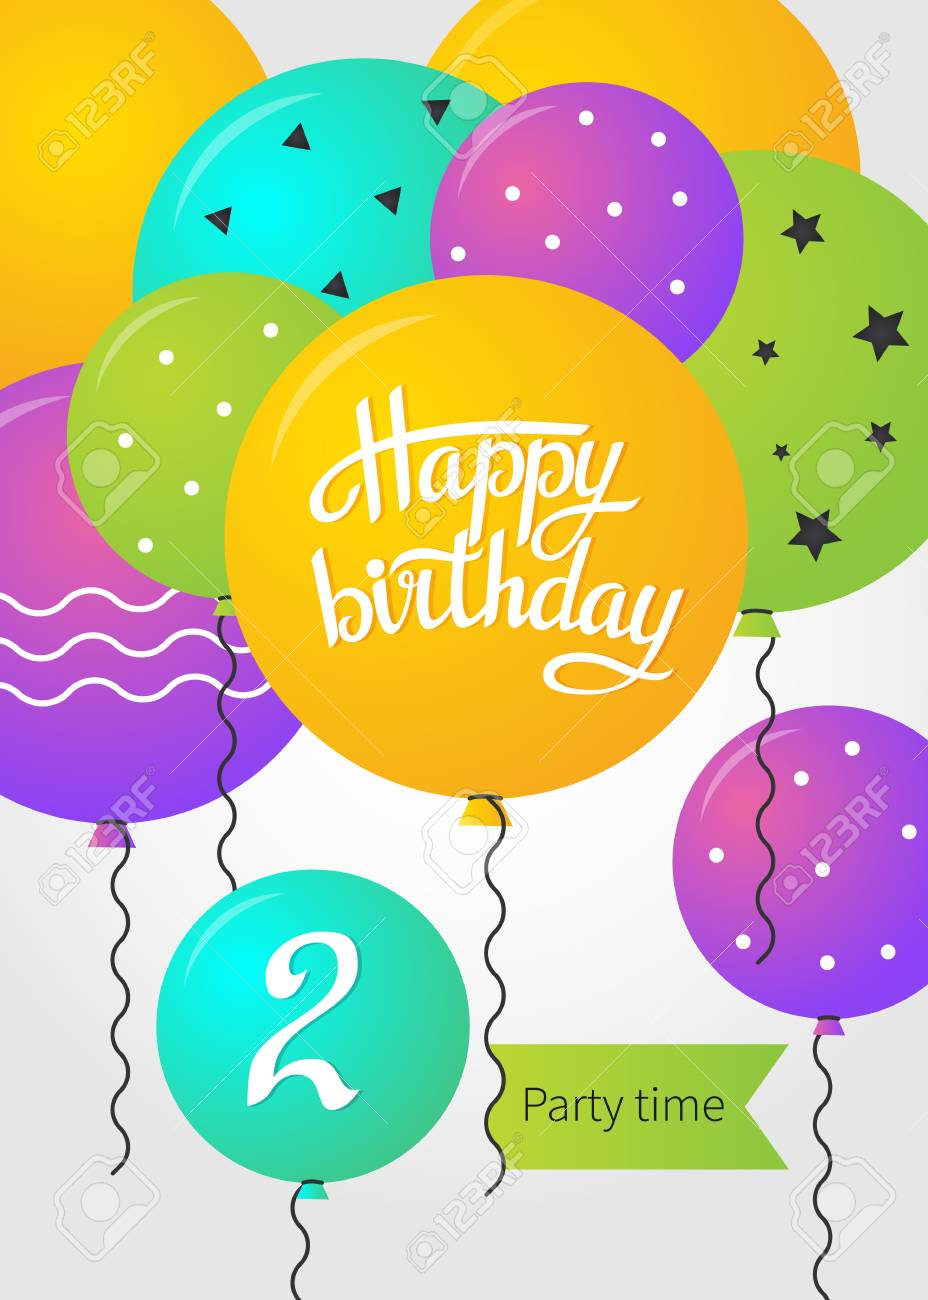 Happy Birthday Card Template With Balloons 2 Years Vector Illustration Stock